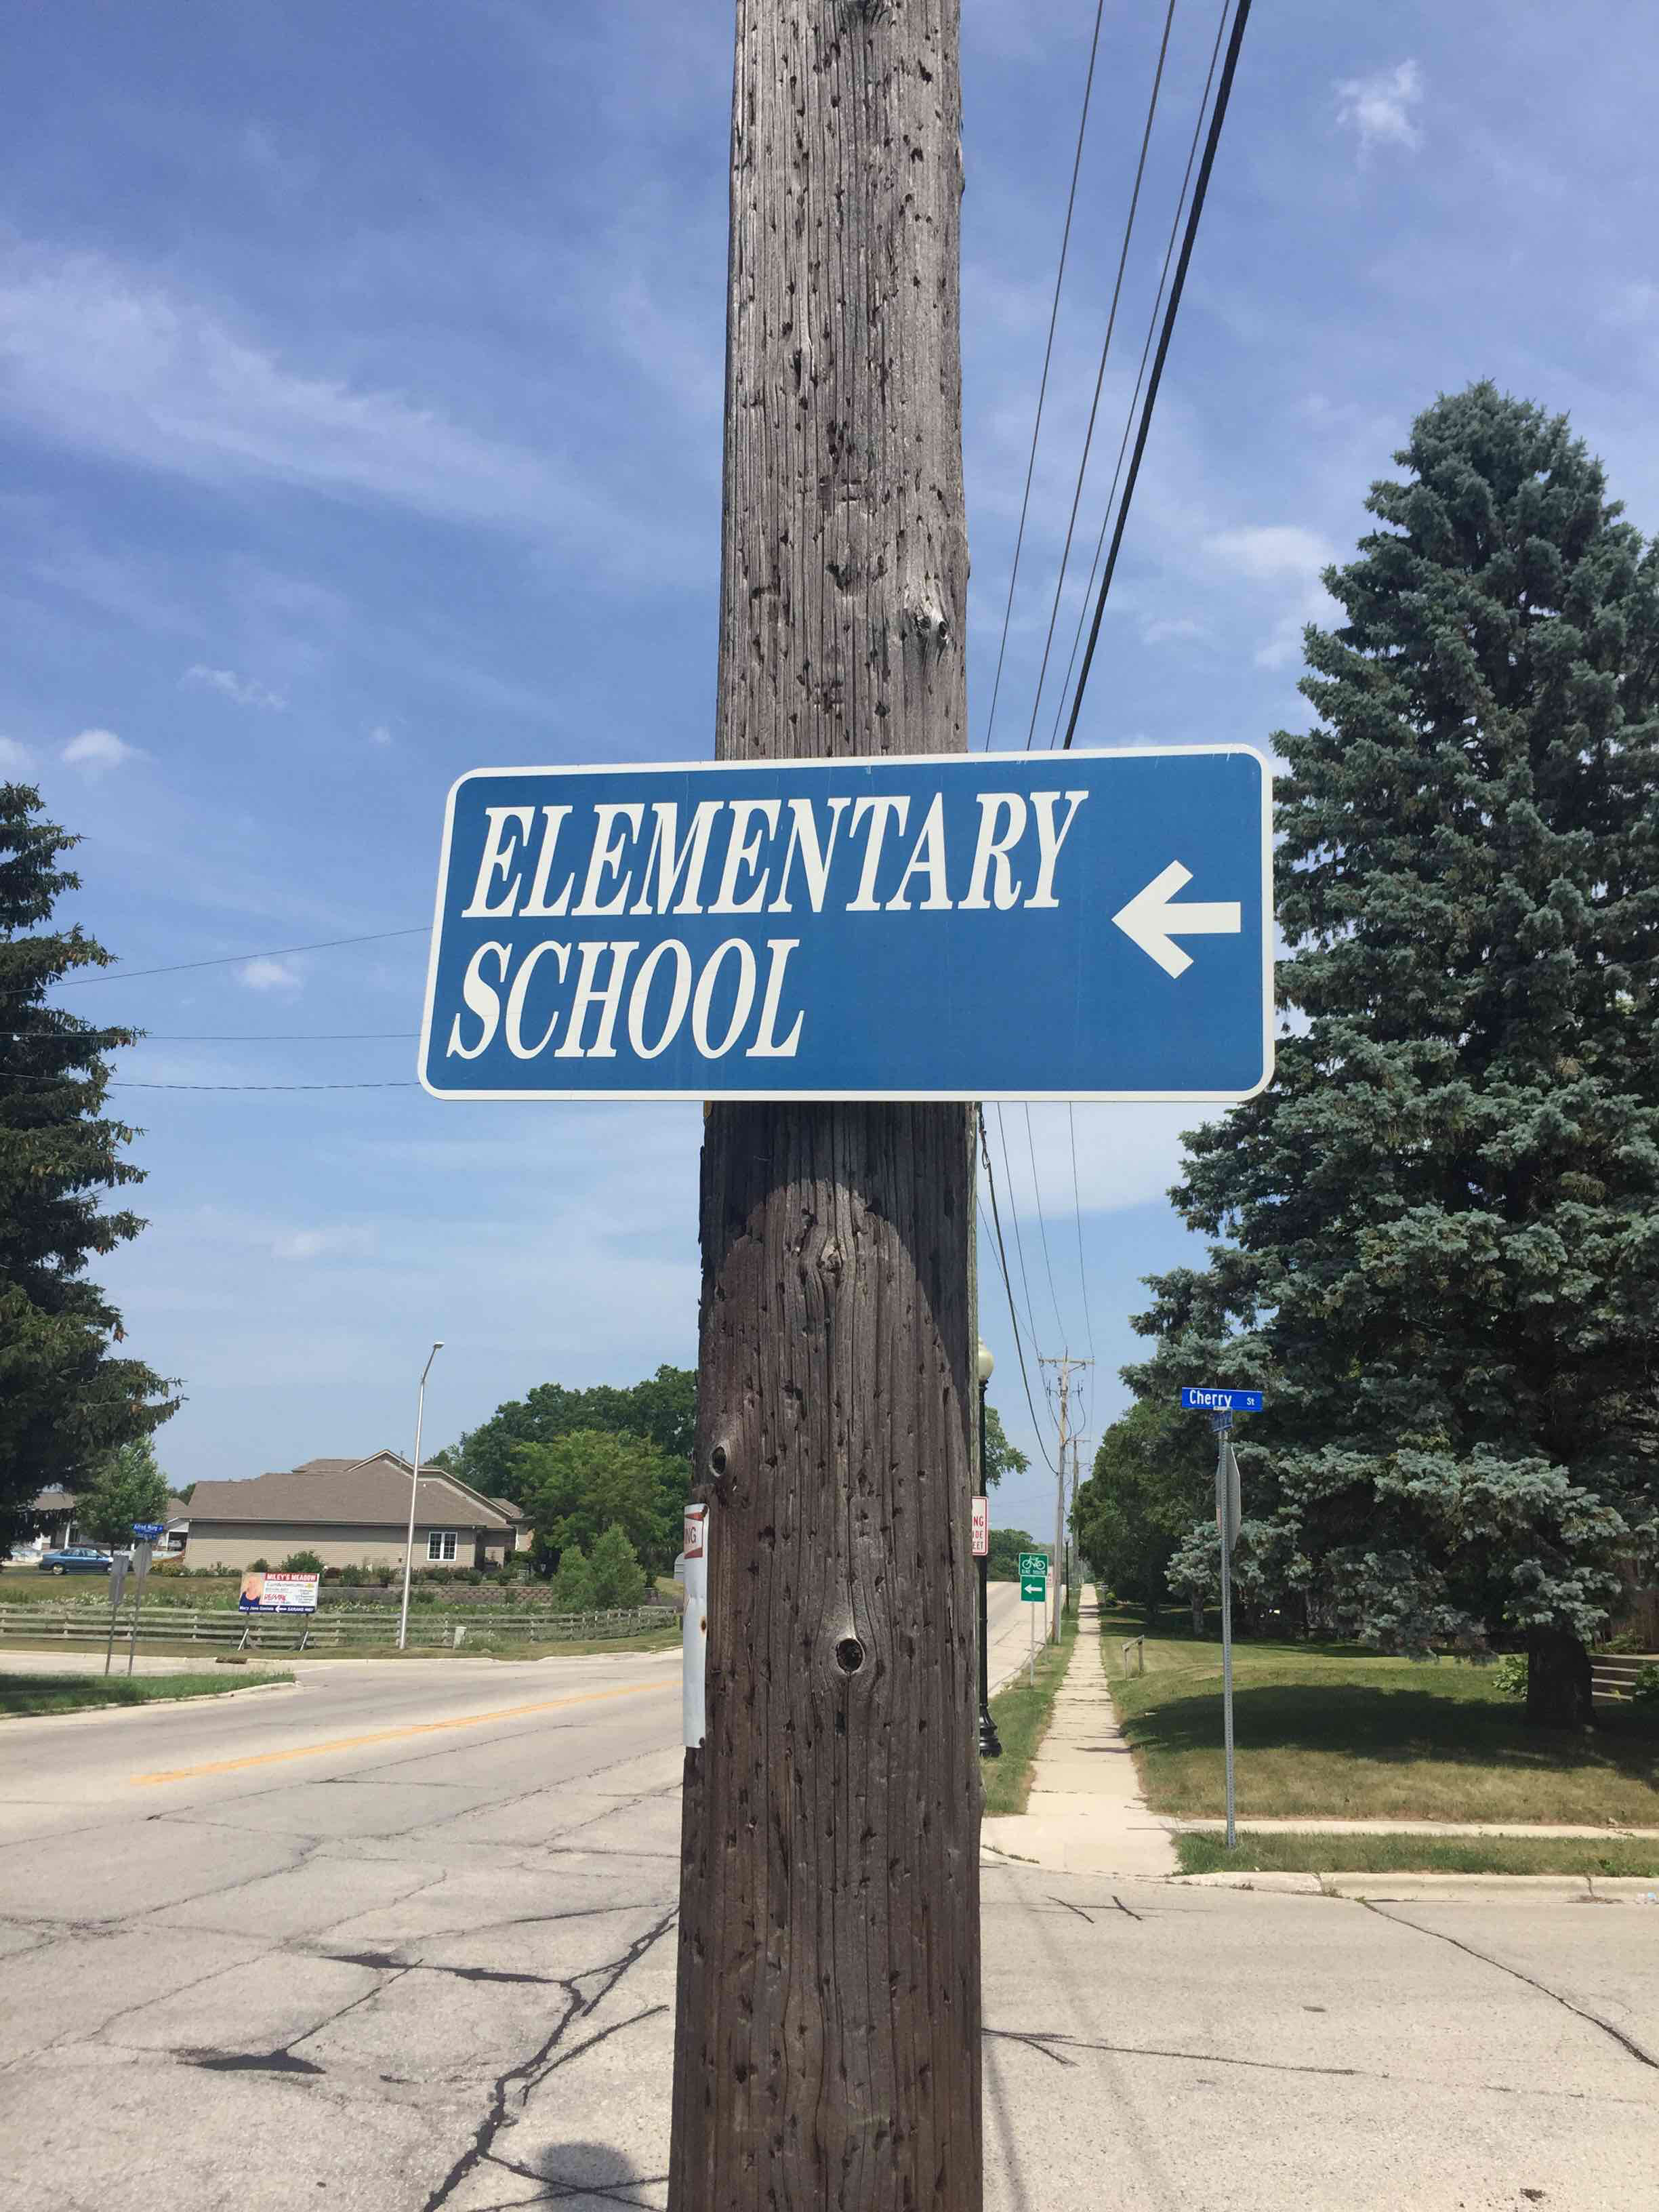 Photo of a sign for an elementary school with an arrow point towards the road, not the school